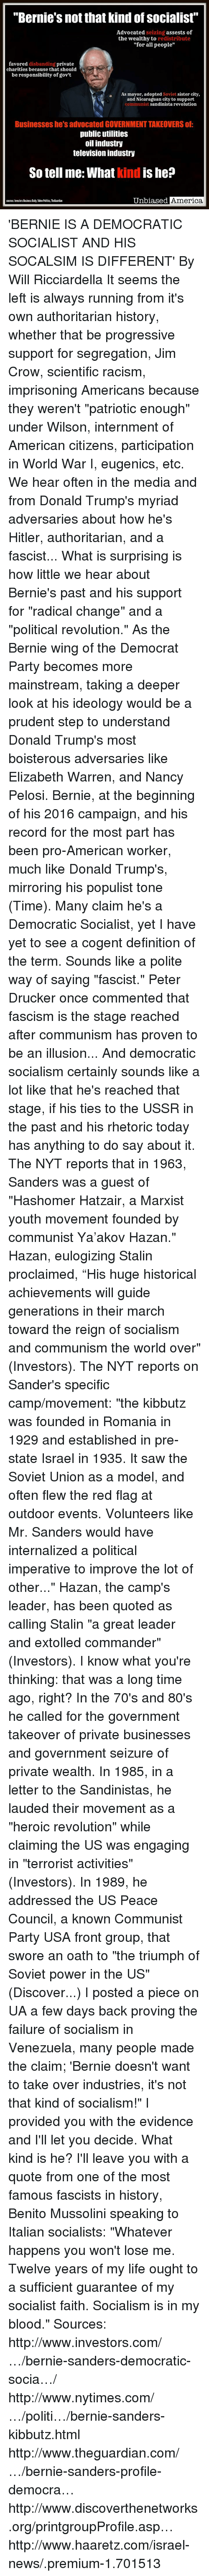 "Stalinator: ""Bernie's not that kind of socialist""  Advocated seizing assests of  the wealthy to redistribute  ""for all people""  favored disbanding private  charities because that should  be responsibility of gov't  As mayor, adopted Soviet sister city,  and Nicaraguan city to support  communist sandinista revolution  Businesses he's advocated GOVERNMENT TAKEOVERS of:  public utilities  oil industry  television industry  So tell me: What kind is he?  Unbiased America  sources lnvestars Business Daily, Yaboo Politics, TheGuardian 'BERNIE IS A DEMOCRATIC SOCIALIST AND HIS SOCALSIM IS DIFFERENT' By Will Ricciardella    It seems the left is always running from it's own authoritarian history, whether that be progressive support for segregation, Jim Crow, scientific racism, imprisoning Americans because they weren't ""patriotic enough"" under Wilson, internment of American citizens, participation in World War I, eugenics, etc.  We hear often in the media and from Donald Trump's myriad adversaries about how he's Hitler, authoritarian, and a fascist...   What is surprising is how little we hear about Bernie's past and his support for ""radical change"" and a ""political revolution.""  As the Bernie wing of the Democrat Party becomes more mainstream, taking a deeper look at his ideology would be a prudent step to understand Donald Trump's most boisterous adversaries like Elizabeth Warren, and Nancy Pelosi.   Bernie, at the beginning of his 2016 campaign, and his record for the most part has been pro-American worker, much like Donald Trump's, mirroring his populist tone (Time). Many claim he's a Democratic Socialist, yet I have yet to see a cogent definition of the term. Sounds like a polite way of saying ""fascist.""   Peter Drucker once commented that fascism is the stage reached after communism has proven to be an illusion... And democratic socialism certainly sounds like a lot like that he's reached that stage, if his ties to the USSR in the past and his rhetoric today has anything to do say about it.   The NYT reports that in 1963, Sanders was a guest of ""Hashomer Hatzair, a Marxist youth movement founded by communist Ya'akov Hazan."" Hazan, eulogizing Stalin proclaimed, ""His huge historical achievements will guide generations in their march toward the reign of socialism and communism the world over"" (Investors).  The NYT reports on Sander's specific camp/movement: ""the kibbutz was founded in Romania in 1929 and established in pre-state Israel in 1935. It saw the Soviet Union as a model, and often flew the red flag at outdoor events. Volunteers like Mr. Sanders would have internalized a political imperative to improve the lot of other...""  Hazan, the camp's leader, has been quoted as calling Stalin ""a great leader and extolled commander"" (Investors).   I know what you're thinking: that was a long time ago, right?  In the 70's and 80's he called for the government takeover of private businesses and government seizure of private wealth.  In 1985, in a letter to the Sandinistas, he lauded their movement as a ""heroic revolution"" while claiming the US was engaging in ""terrorist activities"" (Investors).  In 1989, he addressed the US Peace Council, a known Communist Party USA front group, that swore an oath to ""the triumph of Soviet power in the US"" (Discover...)  I posted a piece on UA a few days back proving the failure of socialism in Venezuela, many people made the claim; 'Bernie doesn't want to take over industries, it's not that kind of socialism!""  I provided you with the evidence and I'll let you decide. What kind is he?  I'll leave you with a quote from one of the most famous fascists in history, Benito Mussolini speaking to Italian socialists:  ""Whatever happens you won't lose me. Twelve years of my life ought to a sufficient guarantee of my socialist faith. Socialism is in my blood.""  Sources:  http://www.investors.com/…/bernie-sanders-democratic-socia…/ http://www.nytimes.com/…/politi…/bernie-sanders-kibbutz.html http://www.theguardian.com/…/bernie-sanders-profile-democra… http://www.discoverthenetworks.org/printgroupProfile.asp… http://www.haaretz.com/israel-news/.premium-1.701513"